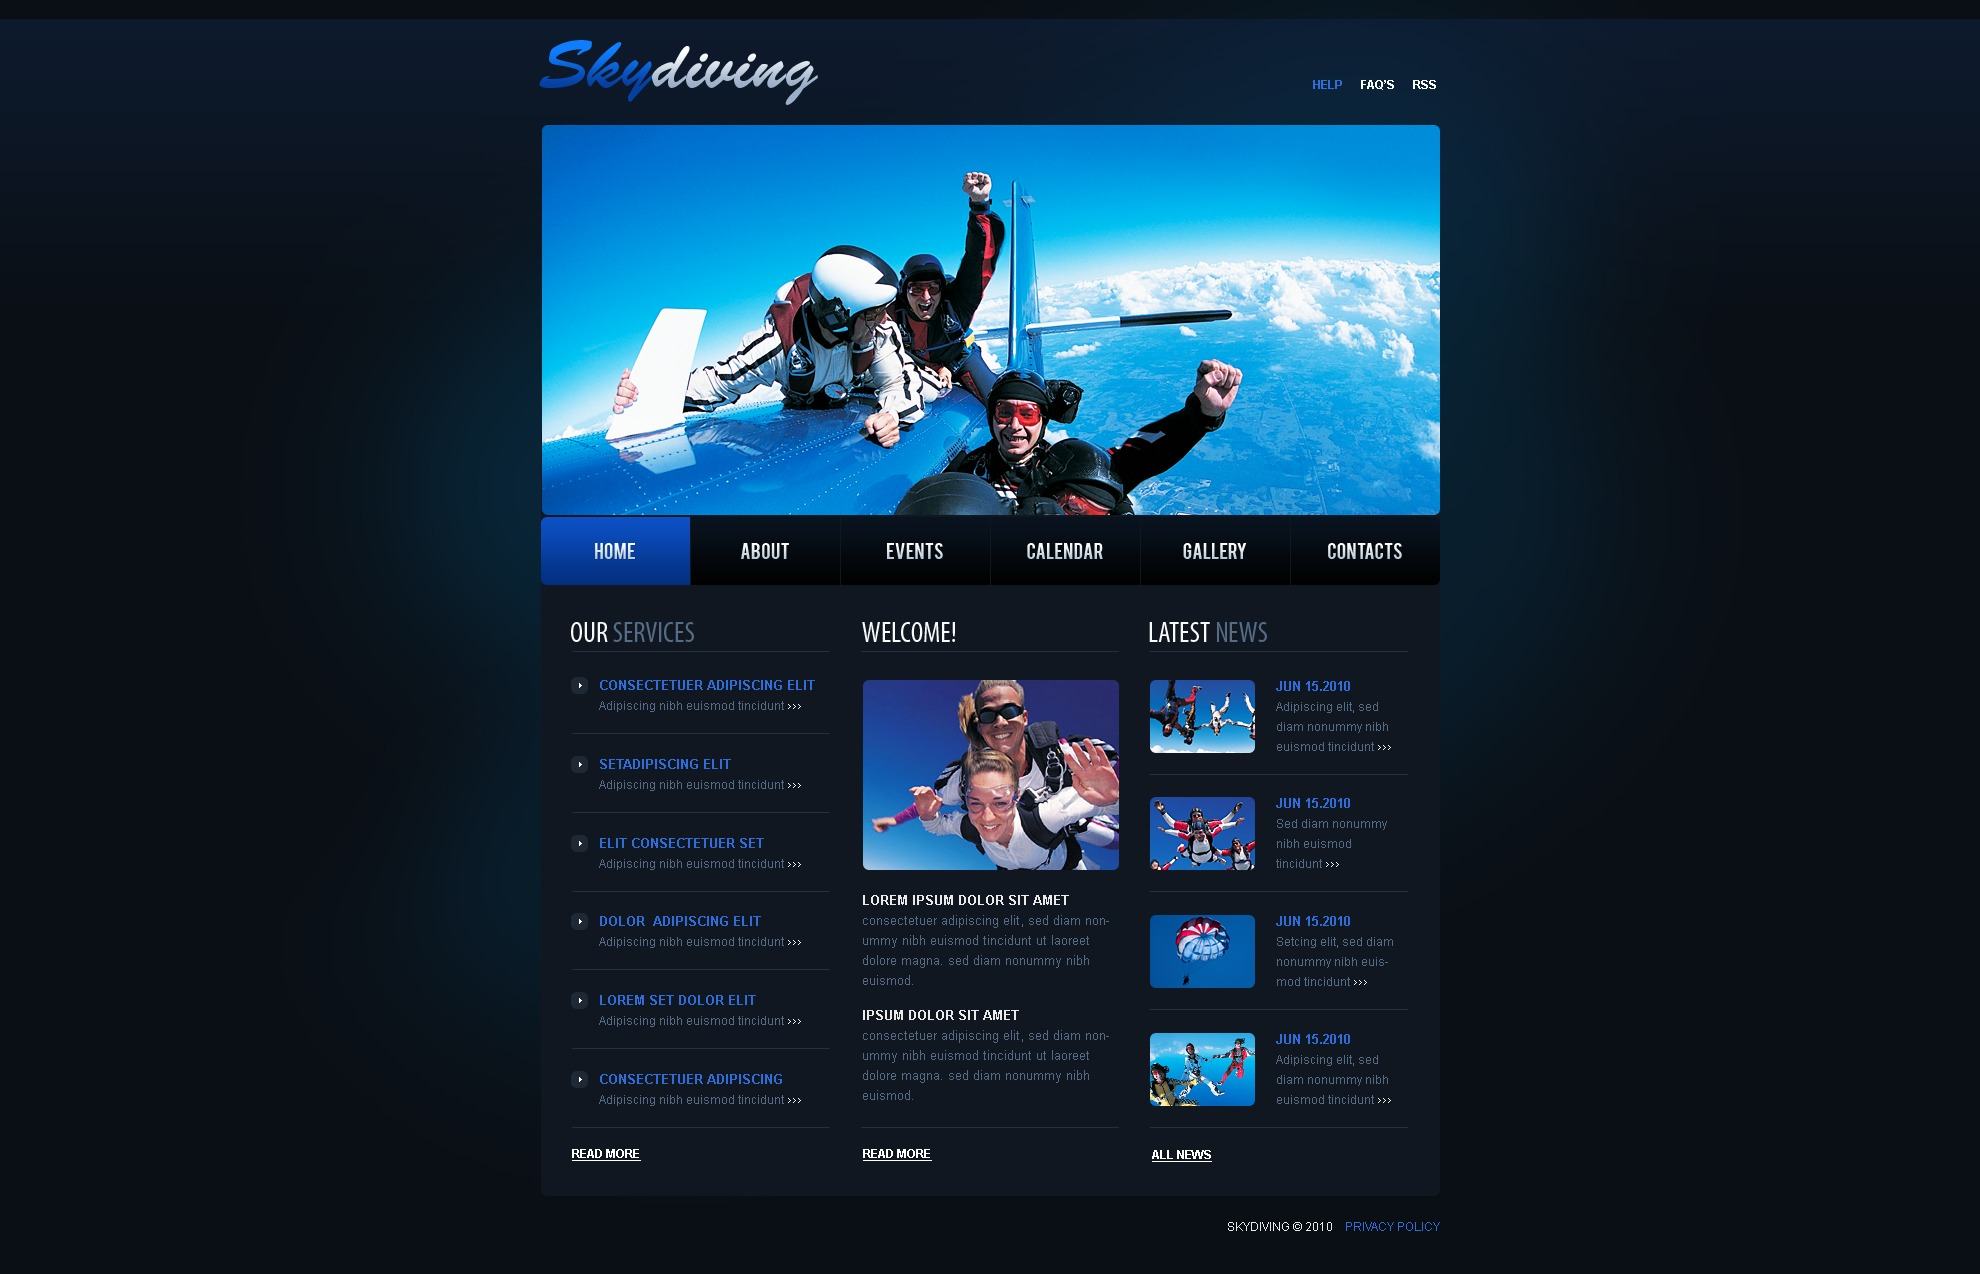 The Skydiving Sky PSD Design 54362, one of the best PSD templates of its kind (sport, flash 8, wide), also known as skydiving sky PSD template, divers PSD template, extreme PSD template, sky PSD template, plane PSD template, jump PSD template, dive club PSD template, sport PSD template, flight PSD template, parachute and related with skydiving sky, divers, extreme, sky, plane, jump, dive club, sport, flight, parachute, etc.